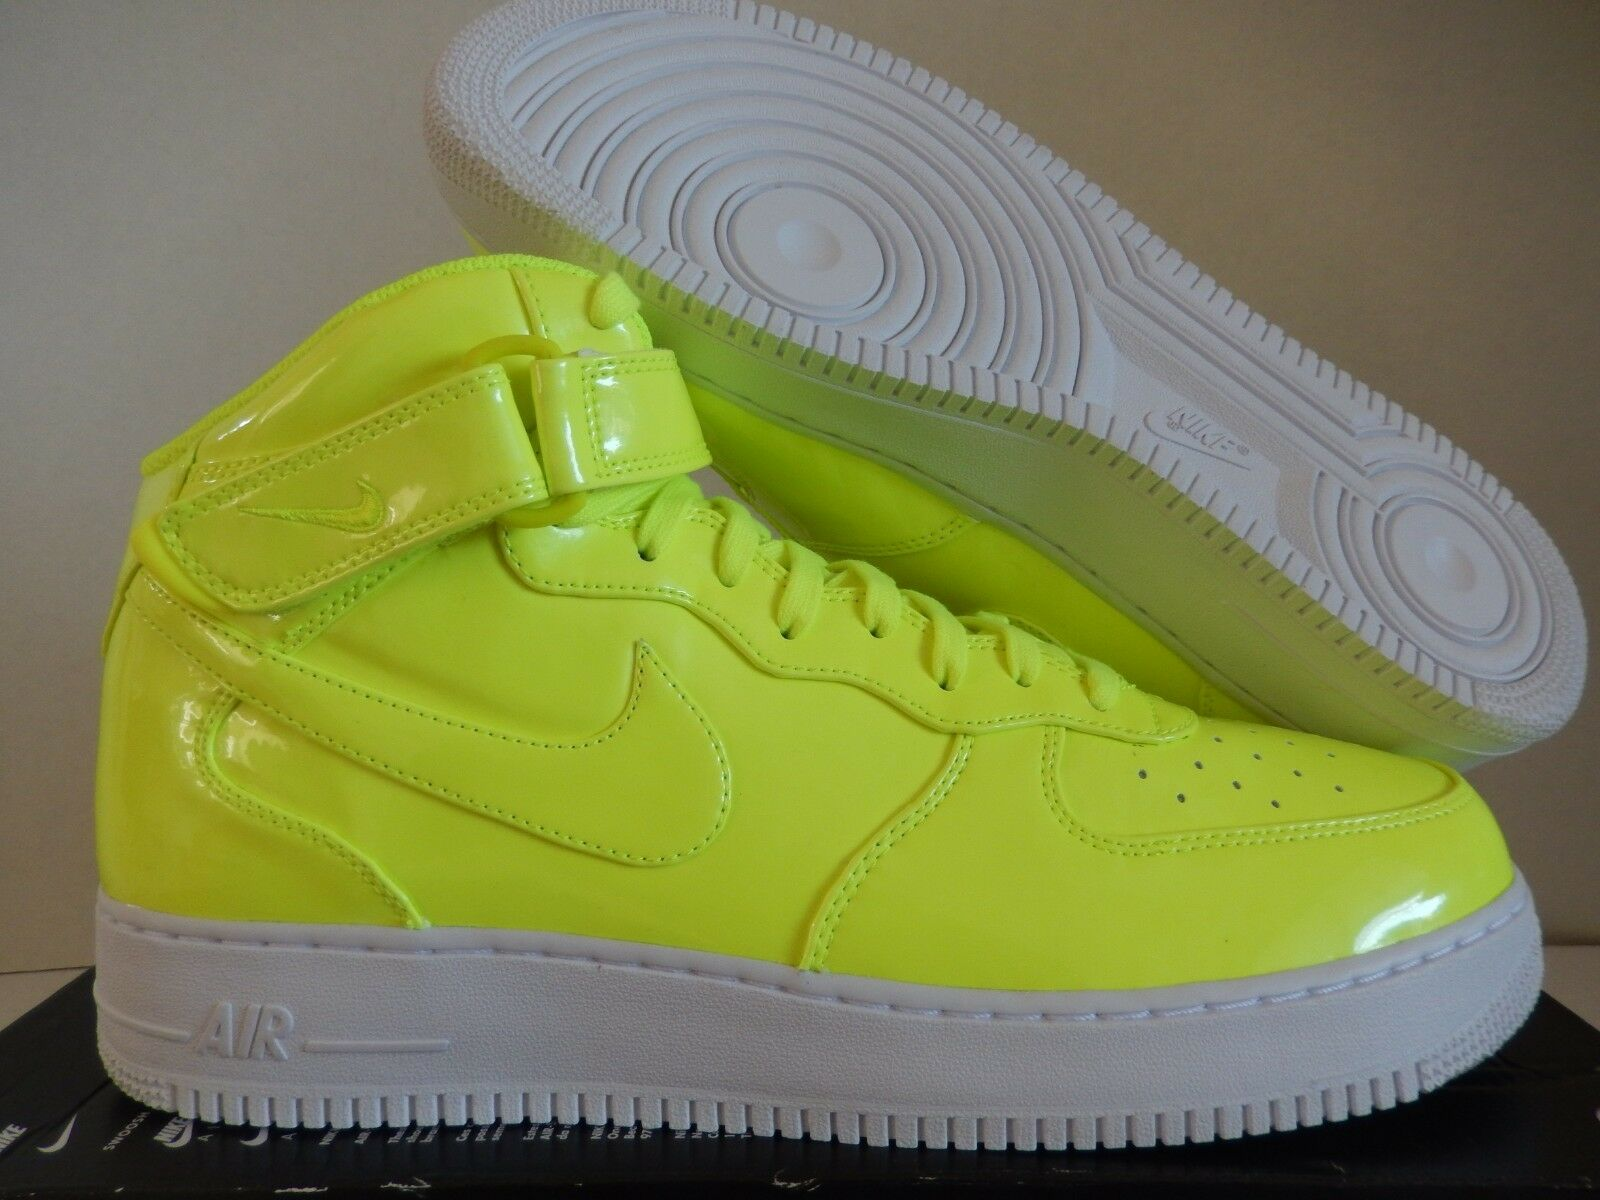 Nike Air 07 Force 1 LV8 Mediados de 07 Air LV8 1 UV